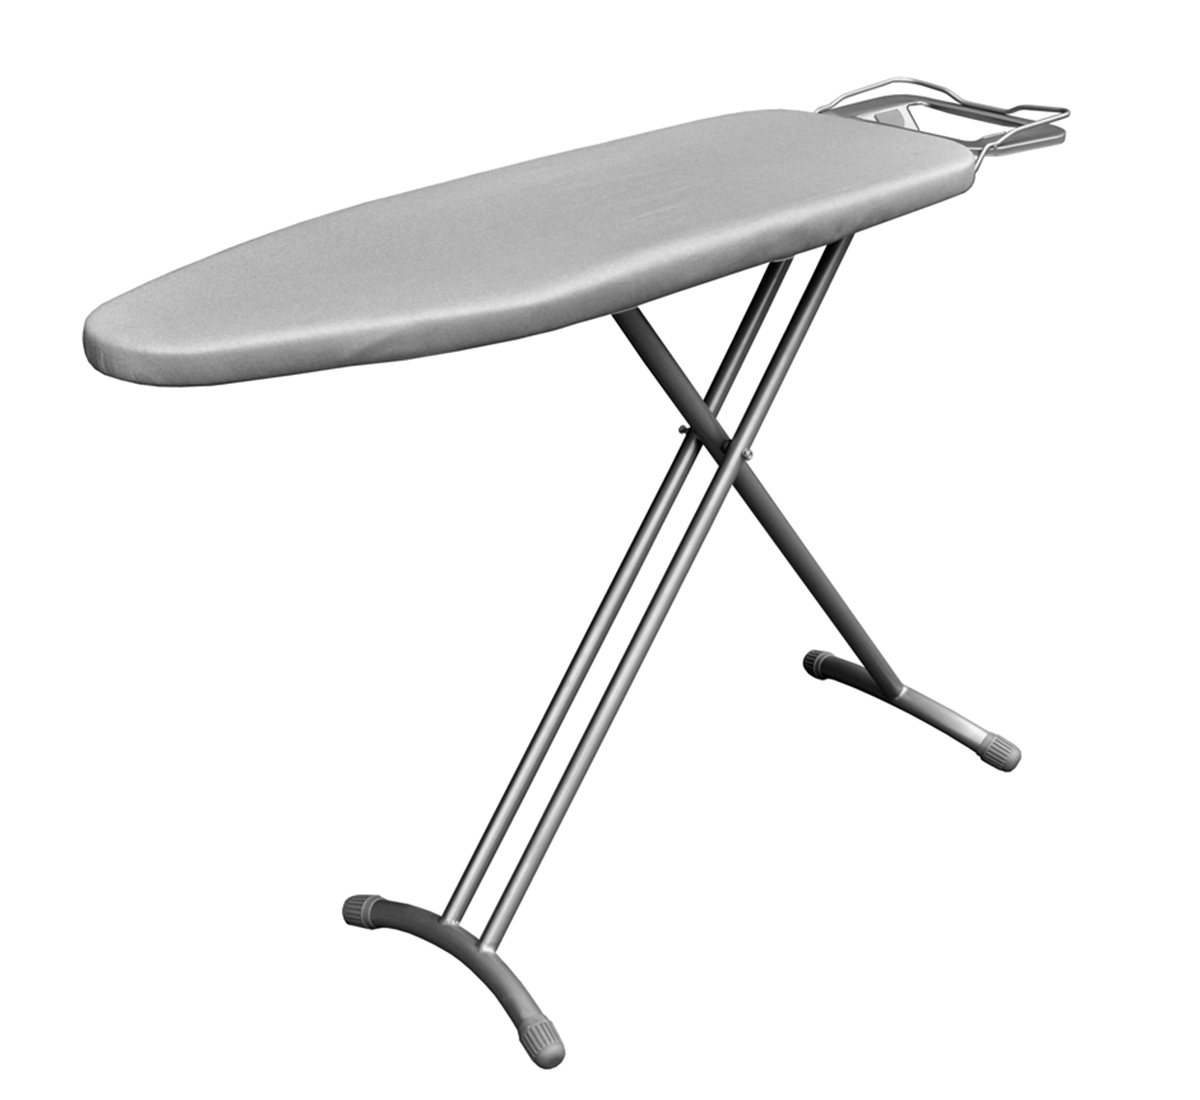 Foldable Ironing Board with Ironing Table with Iron Stand